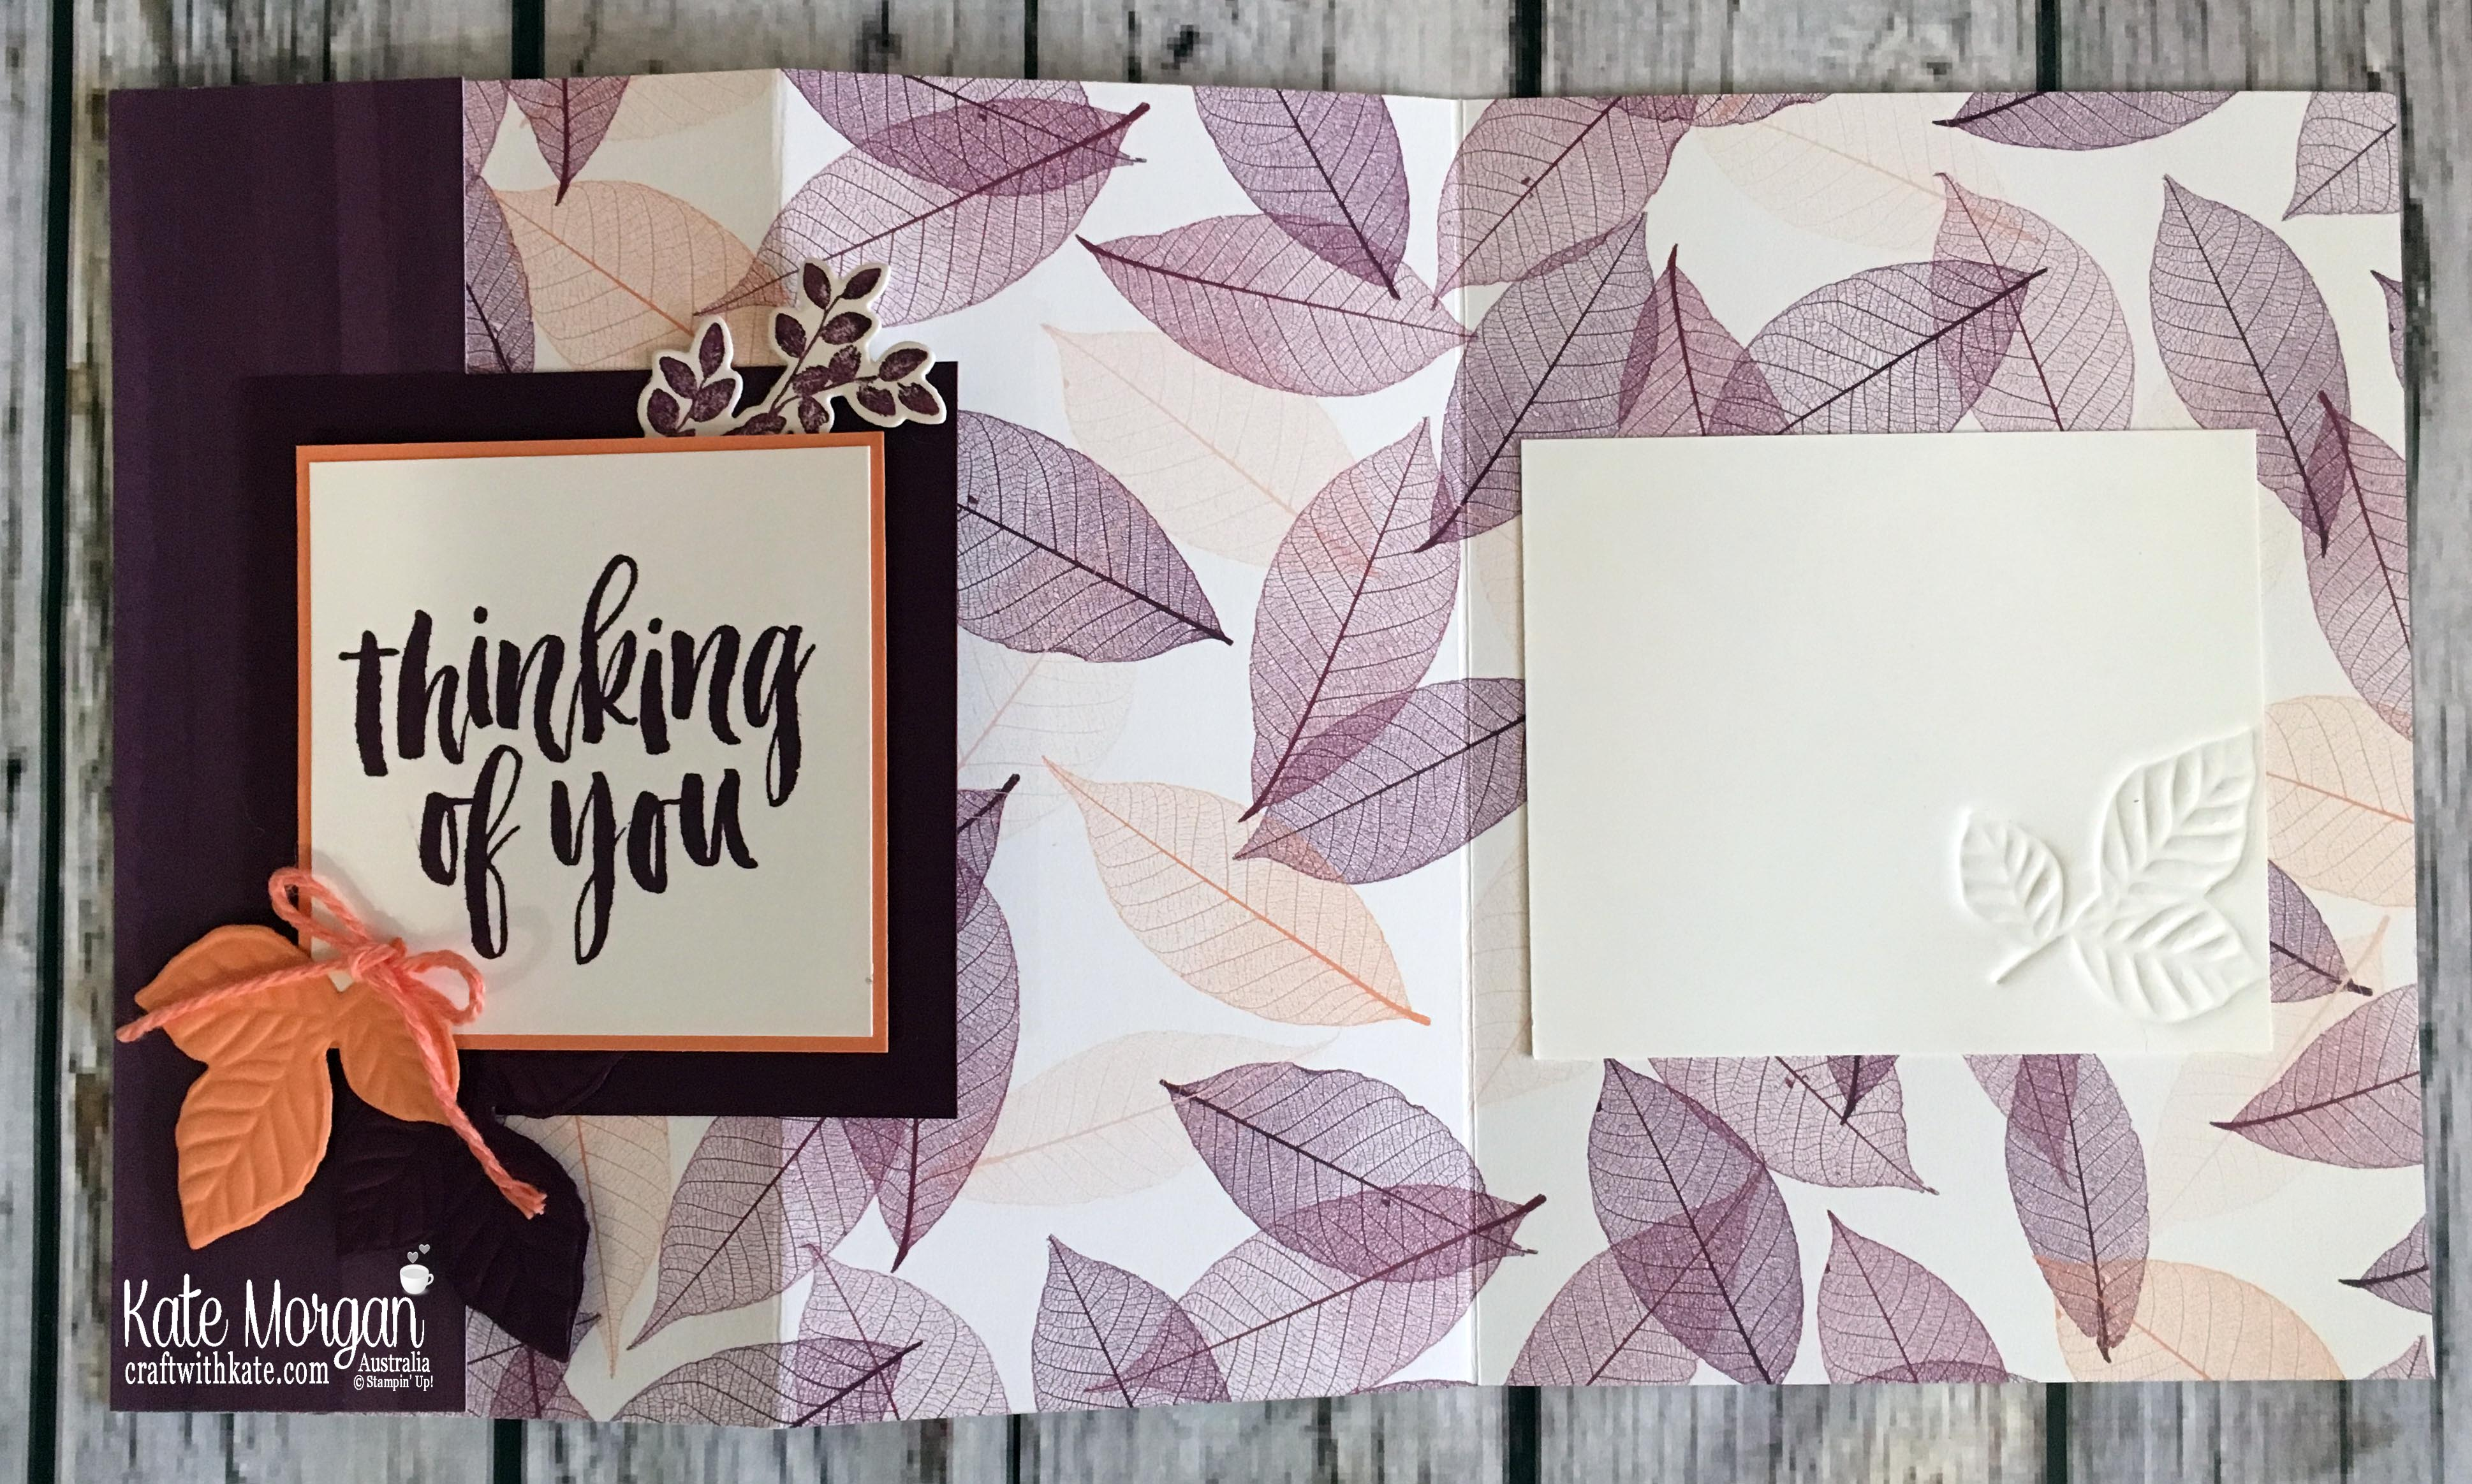 Fun Fold card using Nature's Poem DSP, Rooted in Nature Stampin Up Thinking of You by Kate Morgan, Australia, 2018.